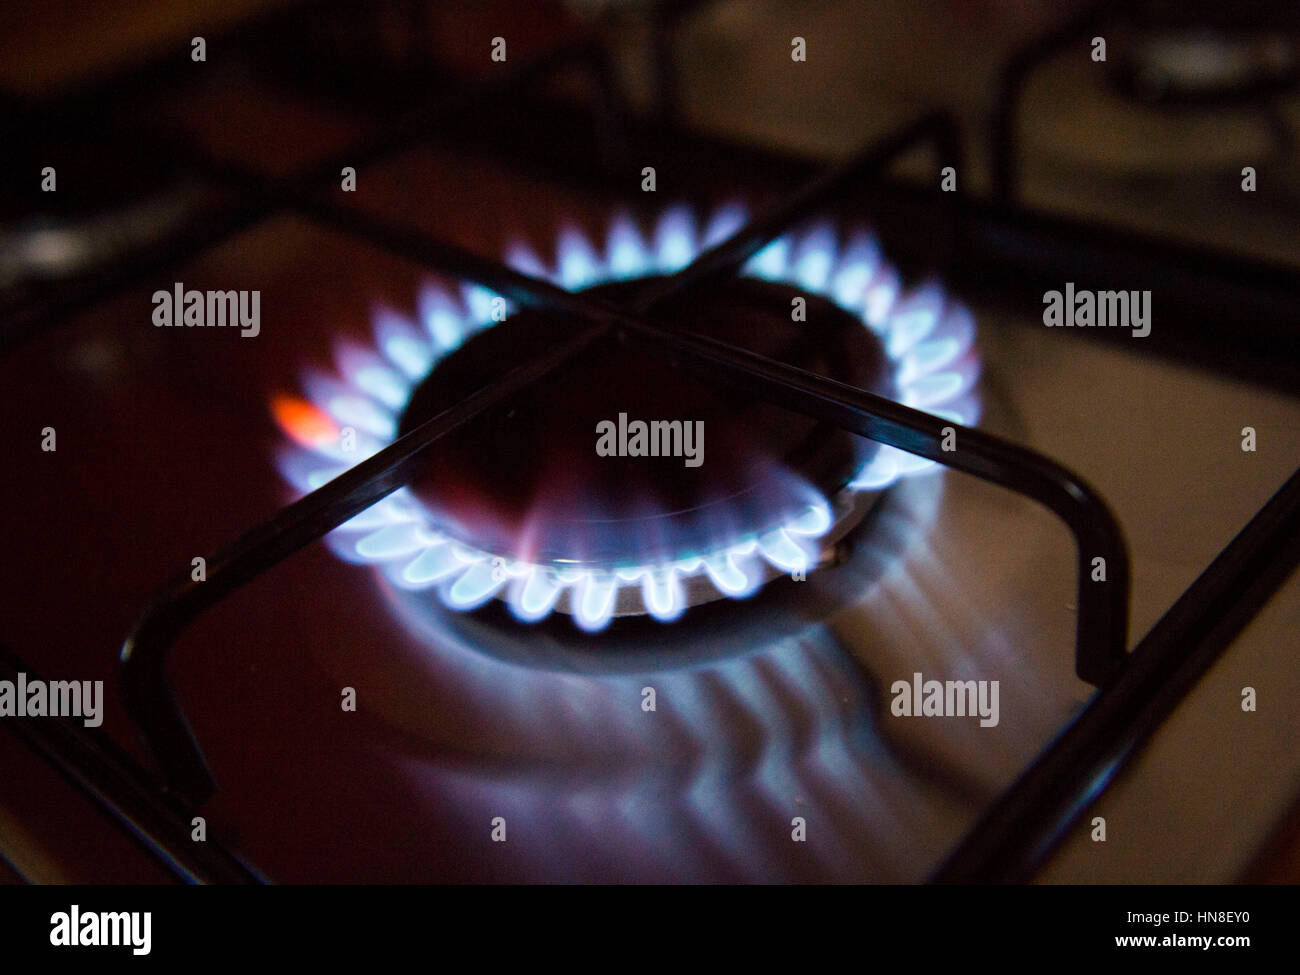 Gas hob cooker flame alight cost of energy UK Stock Photo